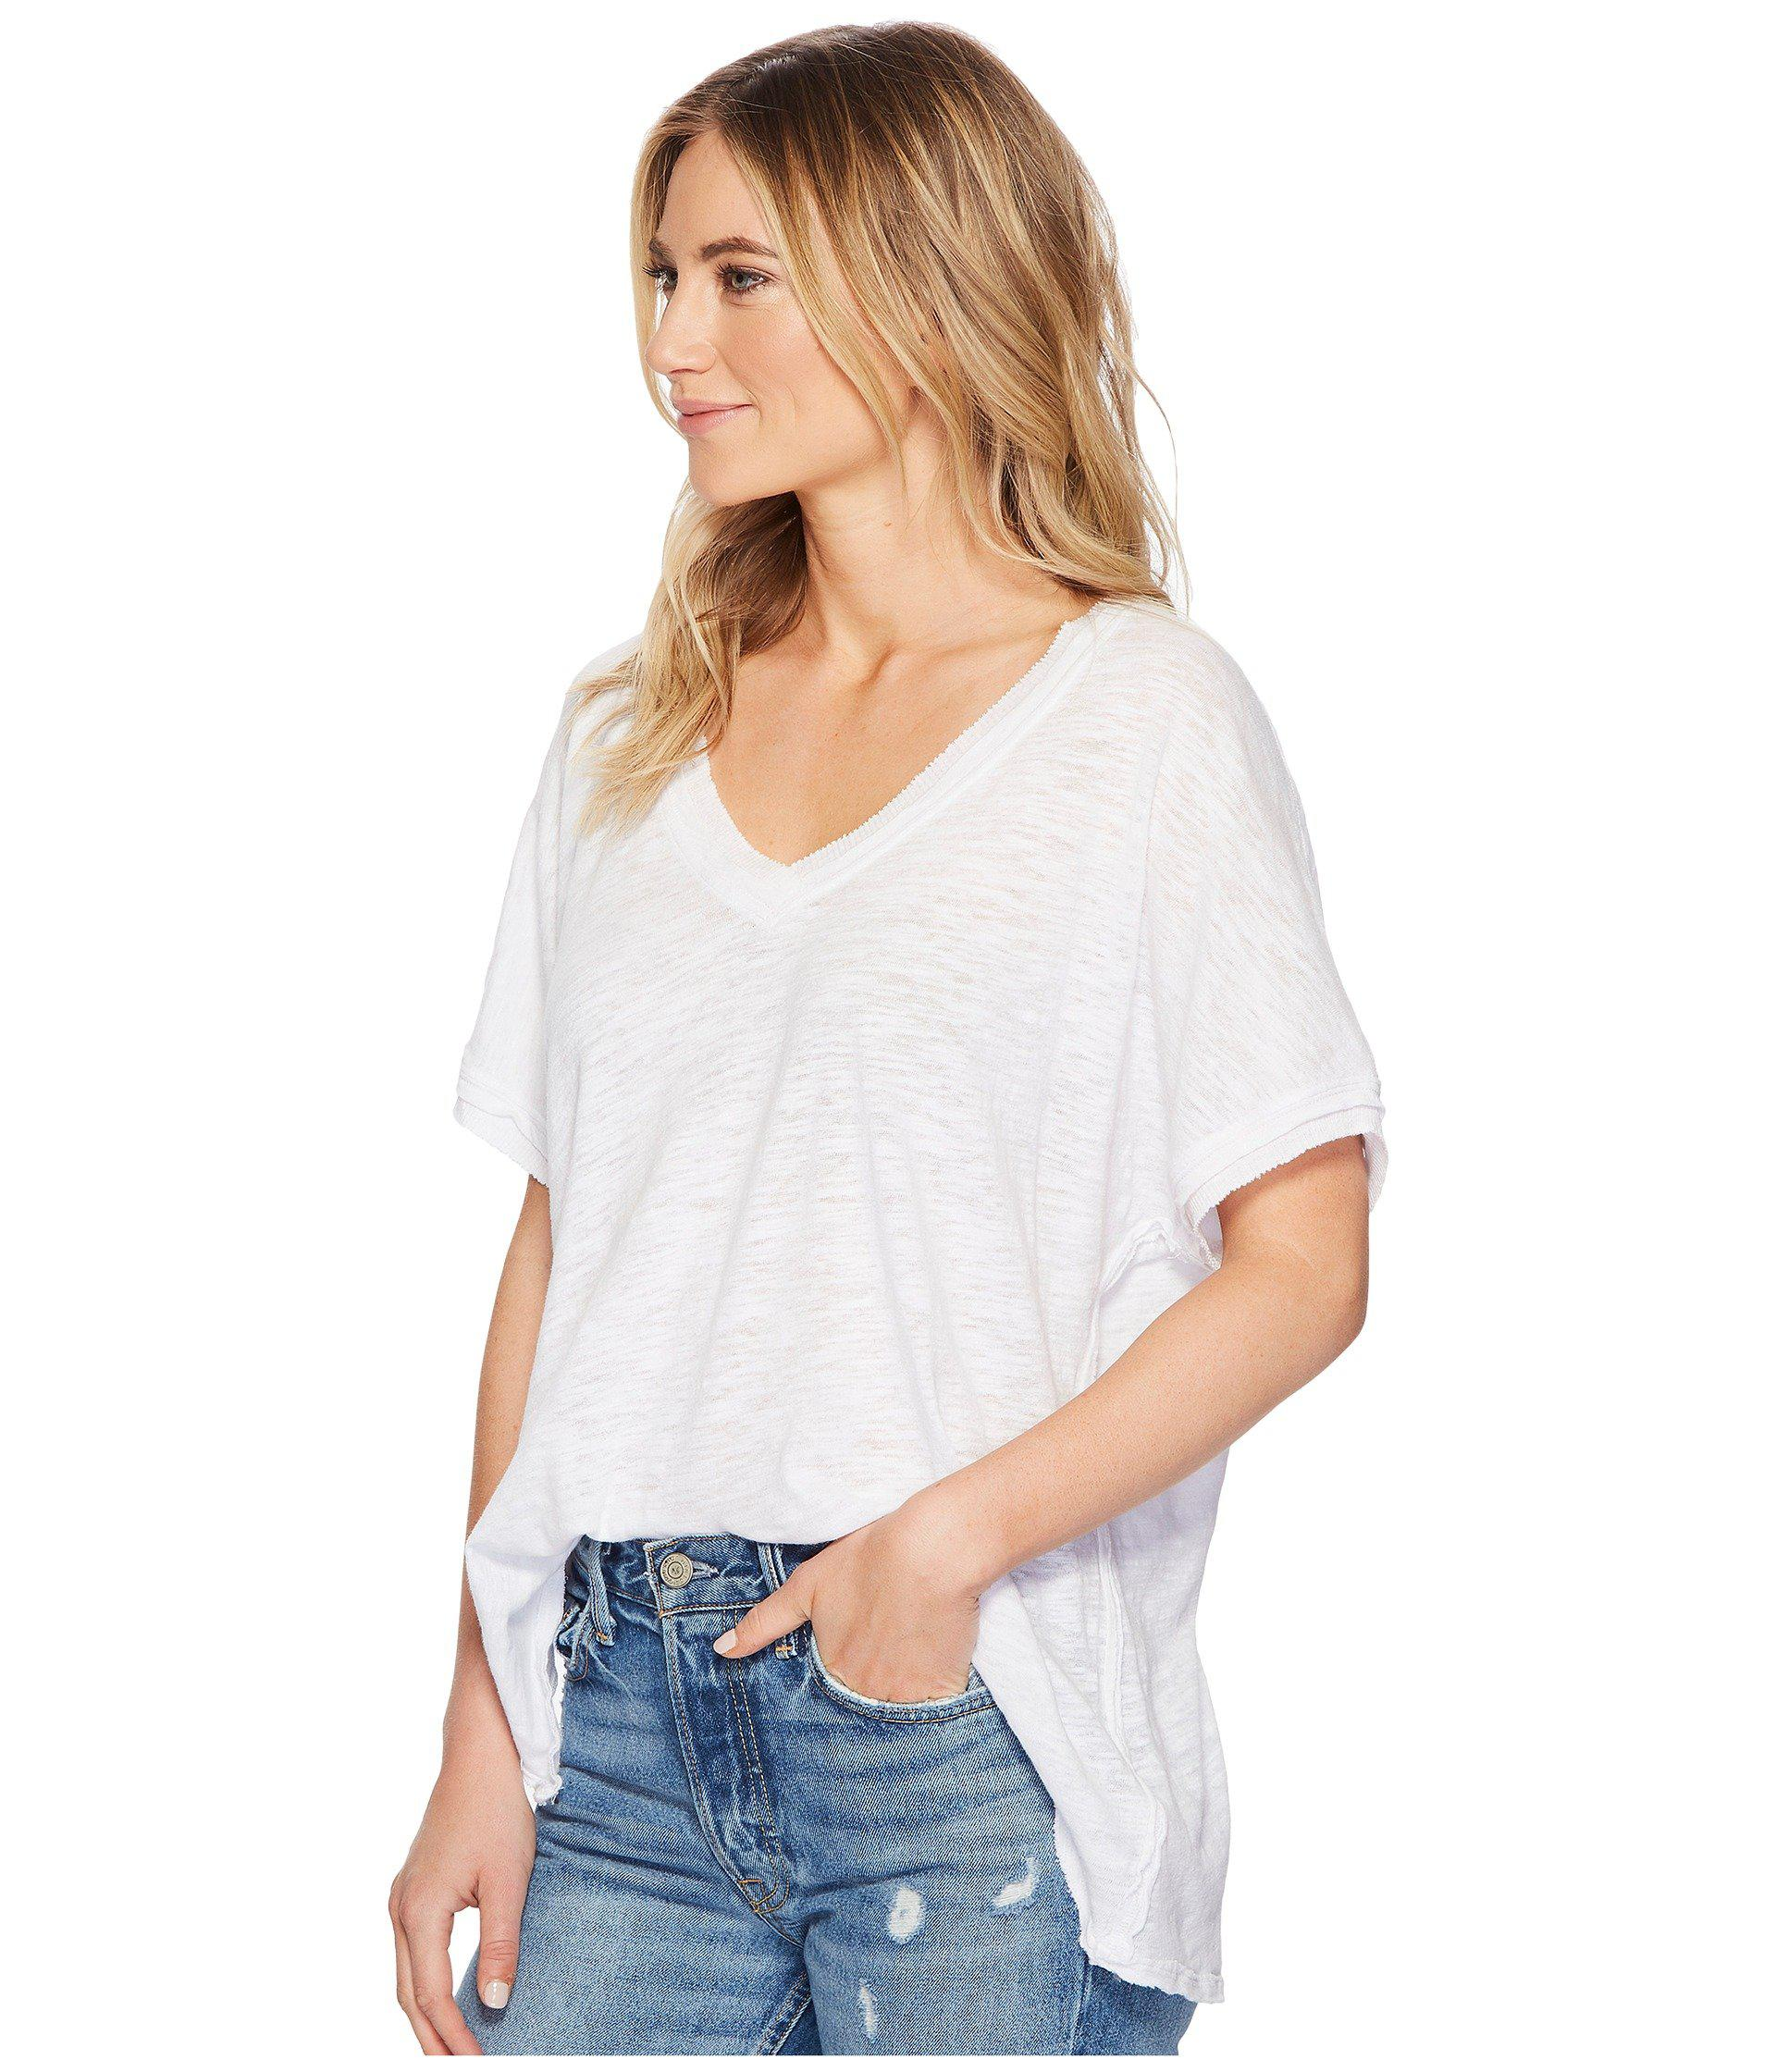 a80aa61fb4091 Lyst - Free People Take Me Tee in White